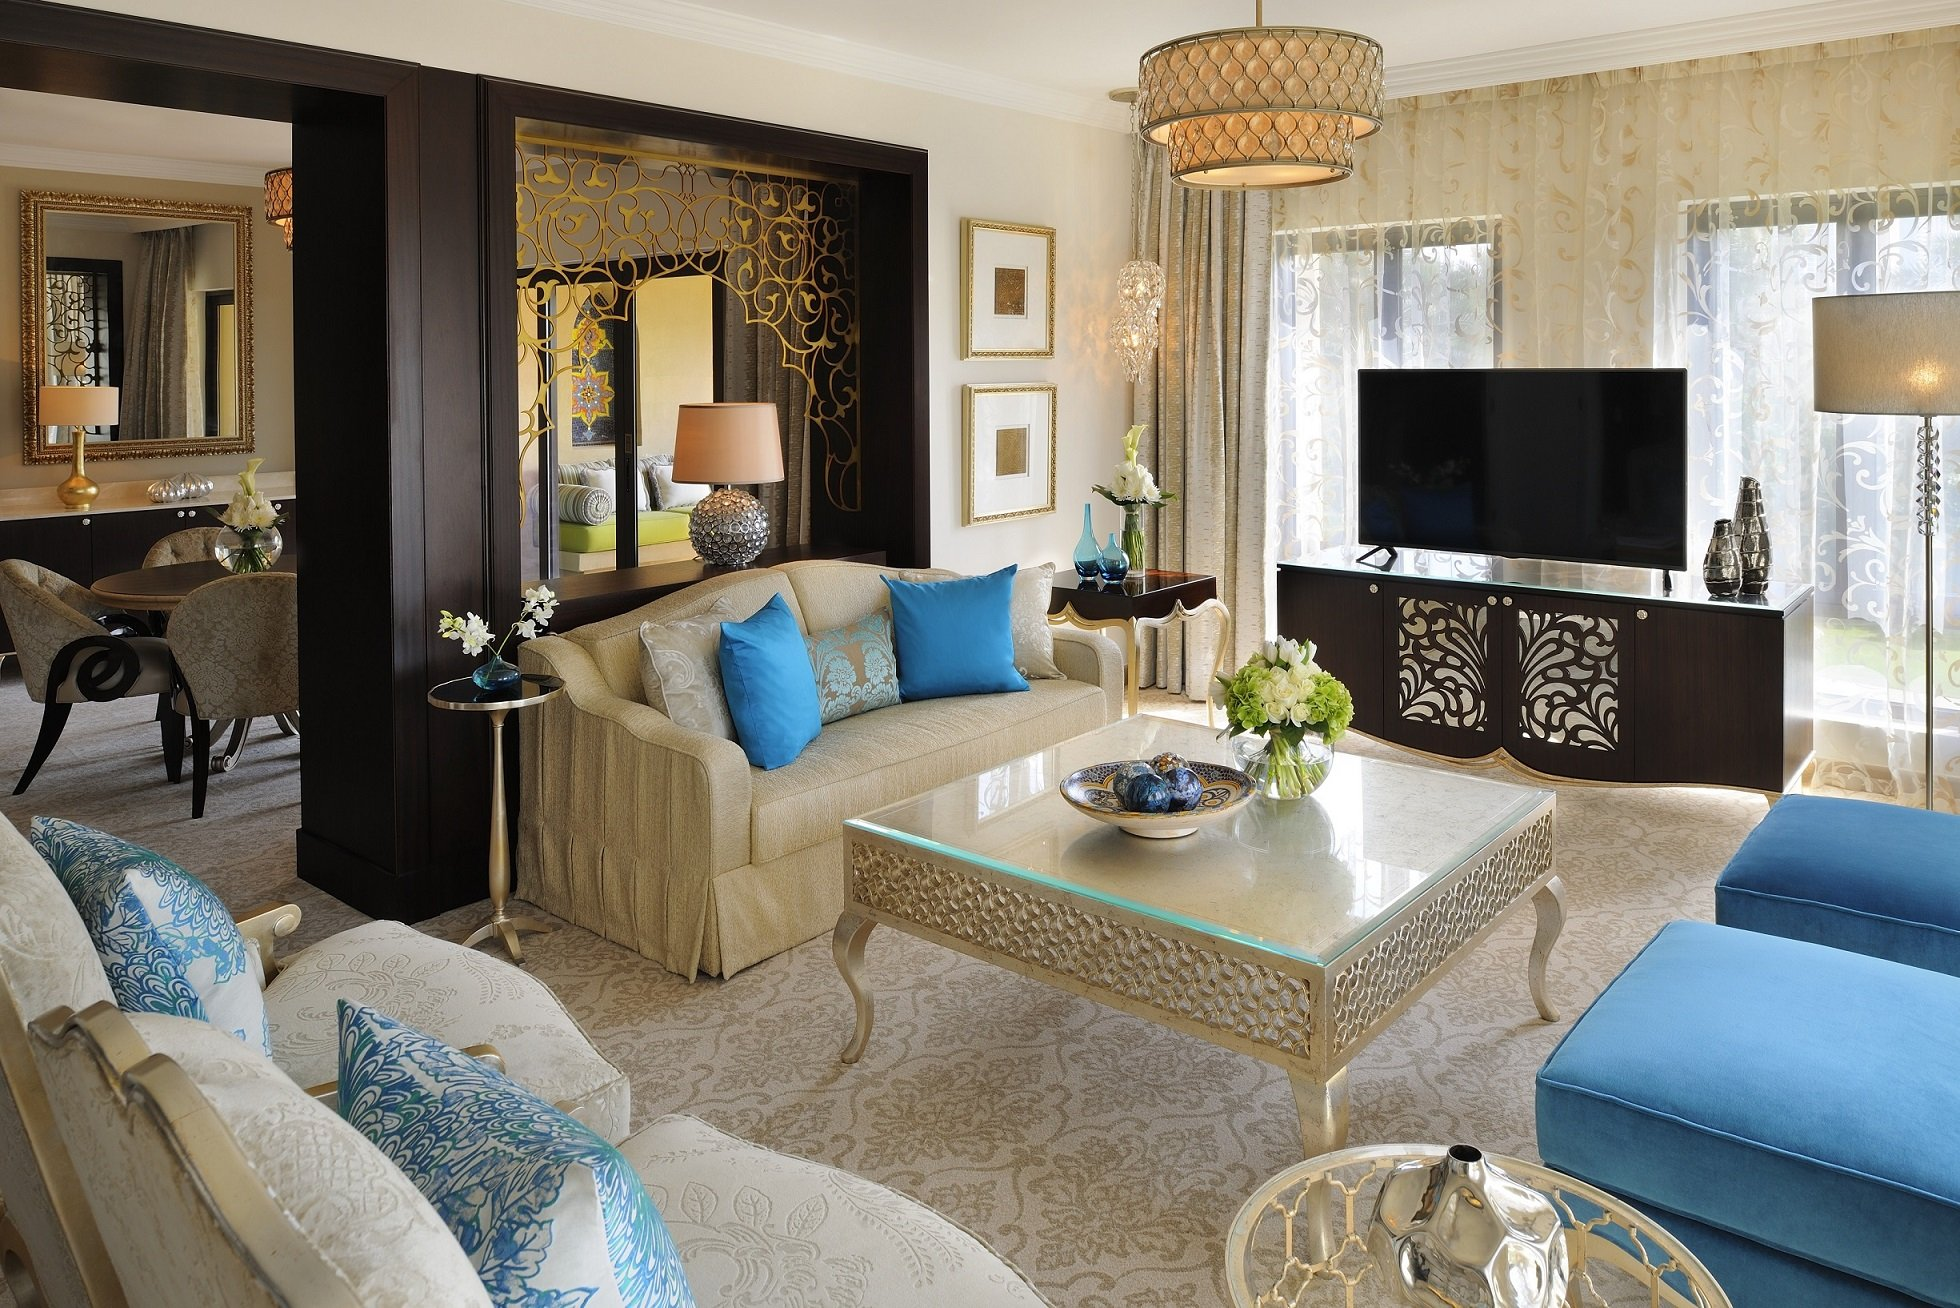 Rooms Review: One&Only Royal Mirage Dubai Review